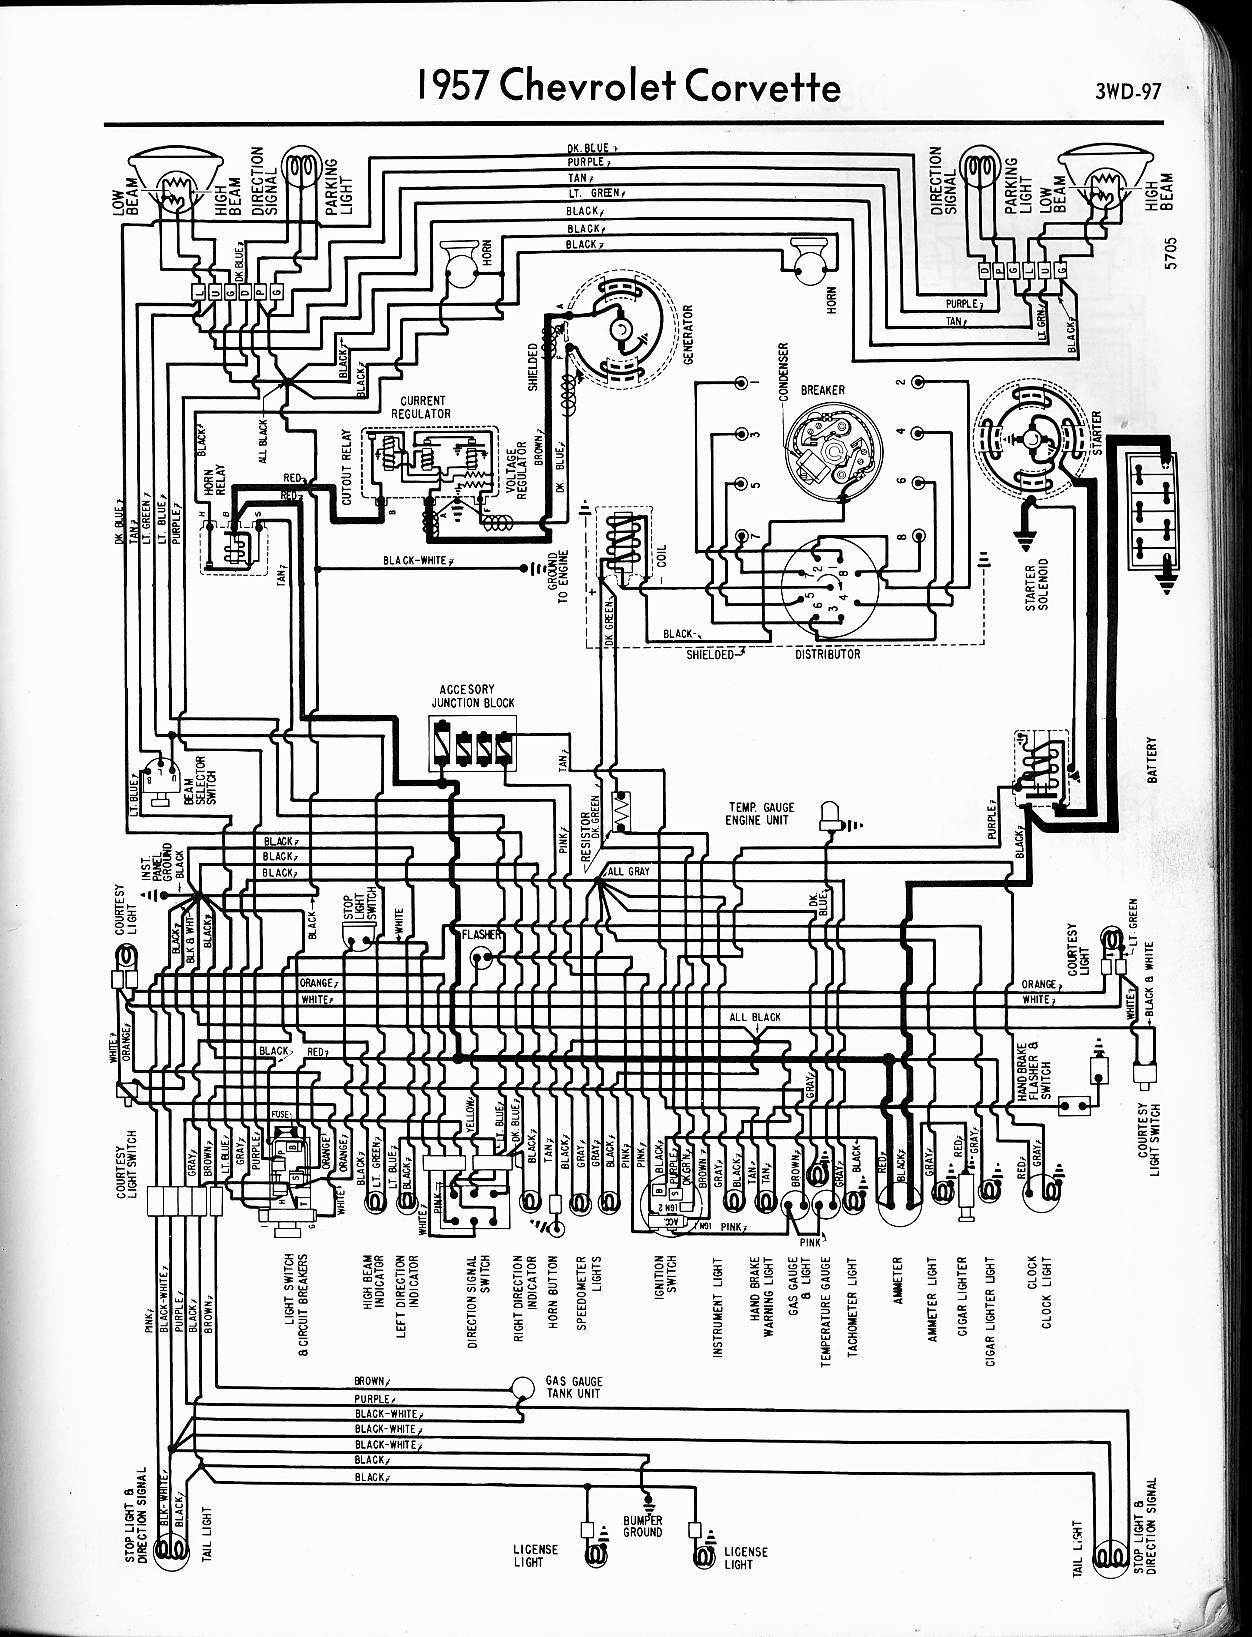 1965 chevy truck wire harness today wiring diagram Chevy Truck Wiring Harness Standard chevy truck dash wiring harness wiring diagrams hubs 1965 chevy truck parking light wire harness 1965 chevy truck wire harness